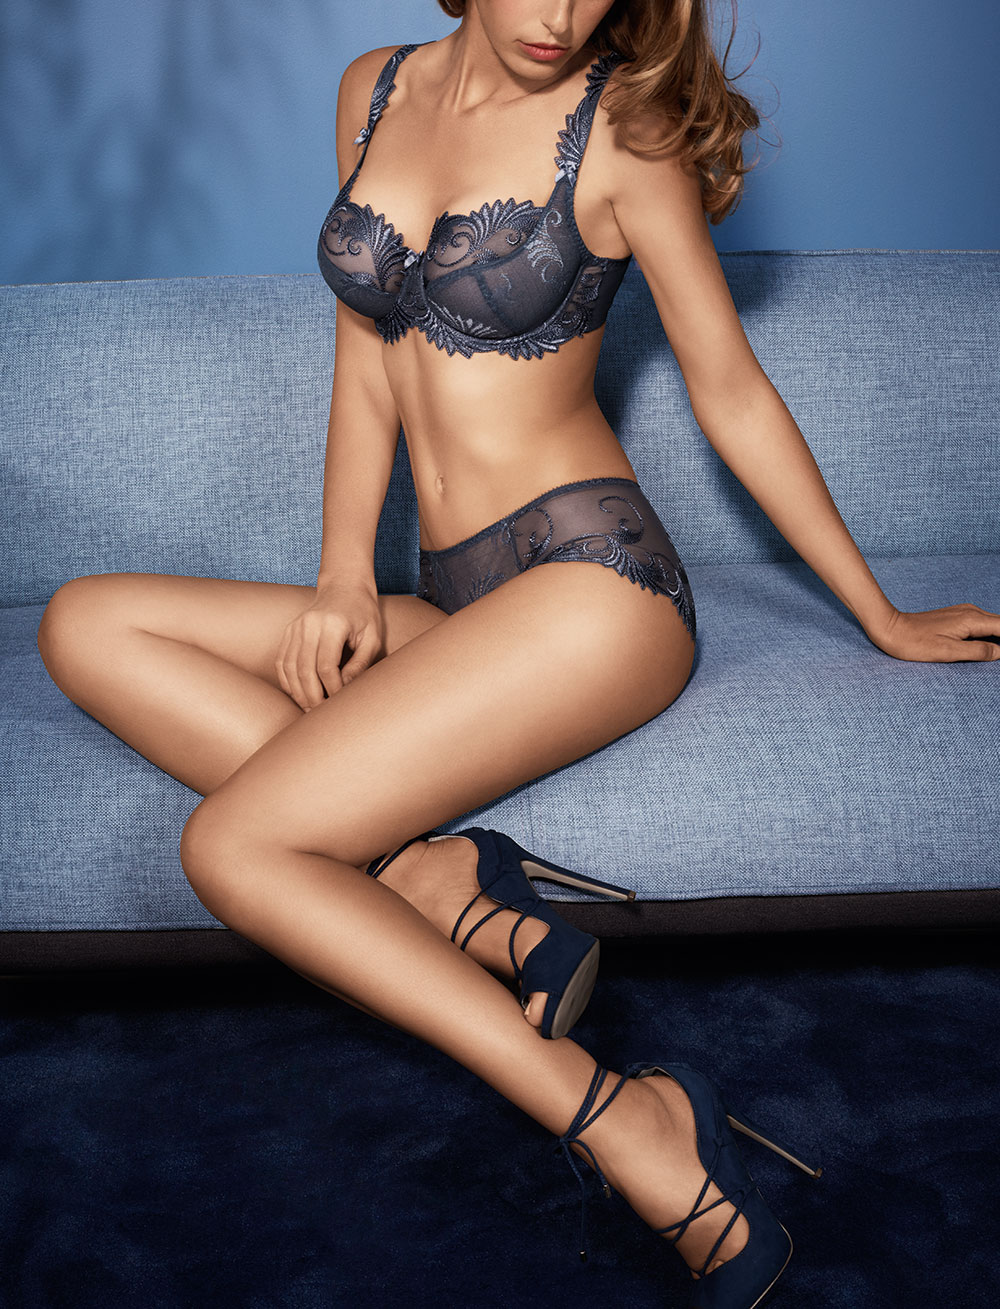 Pictures Lingerie hd